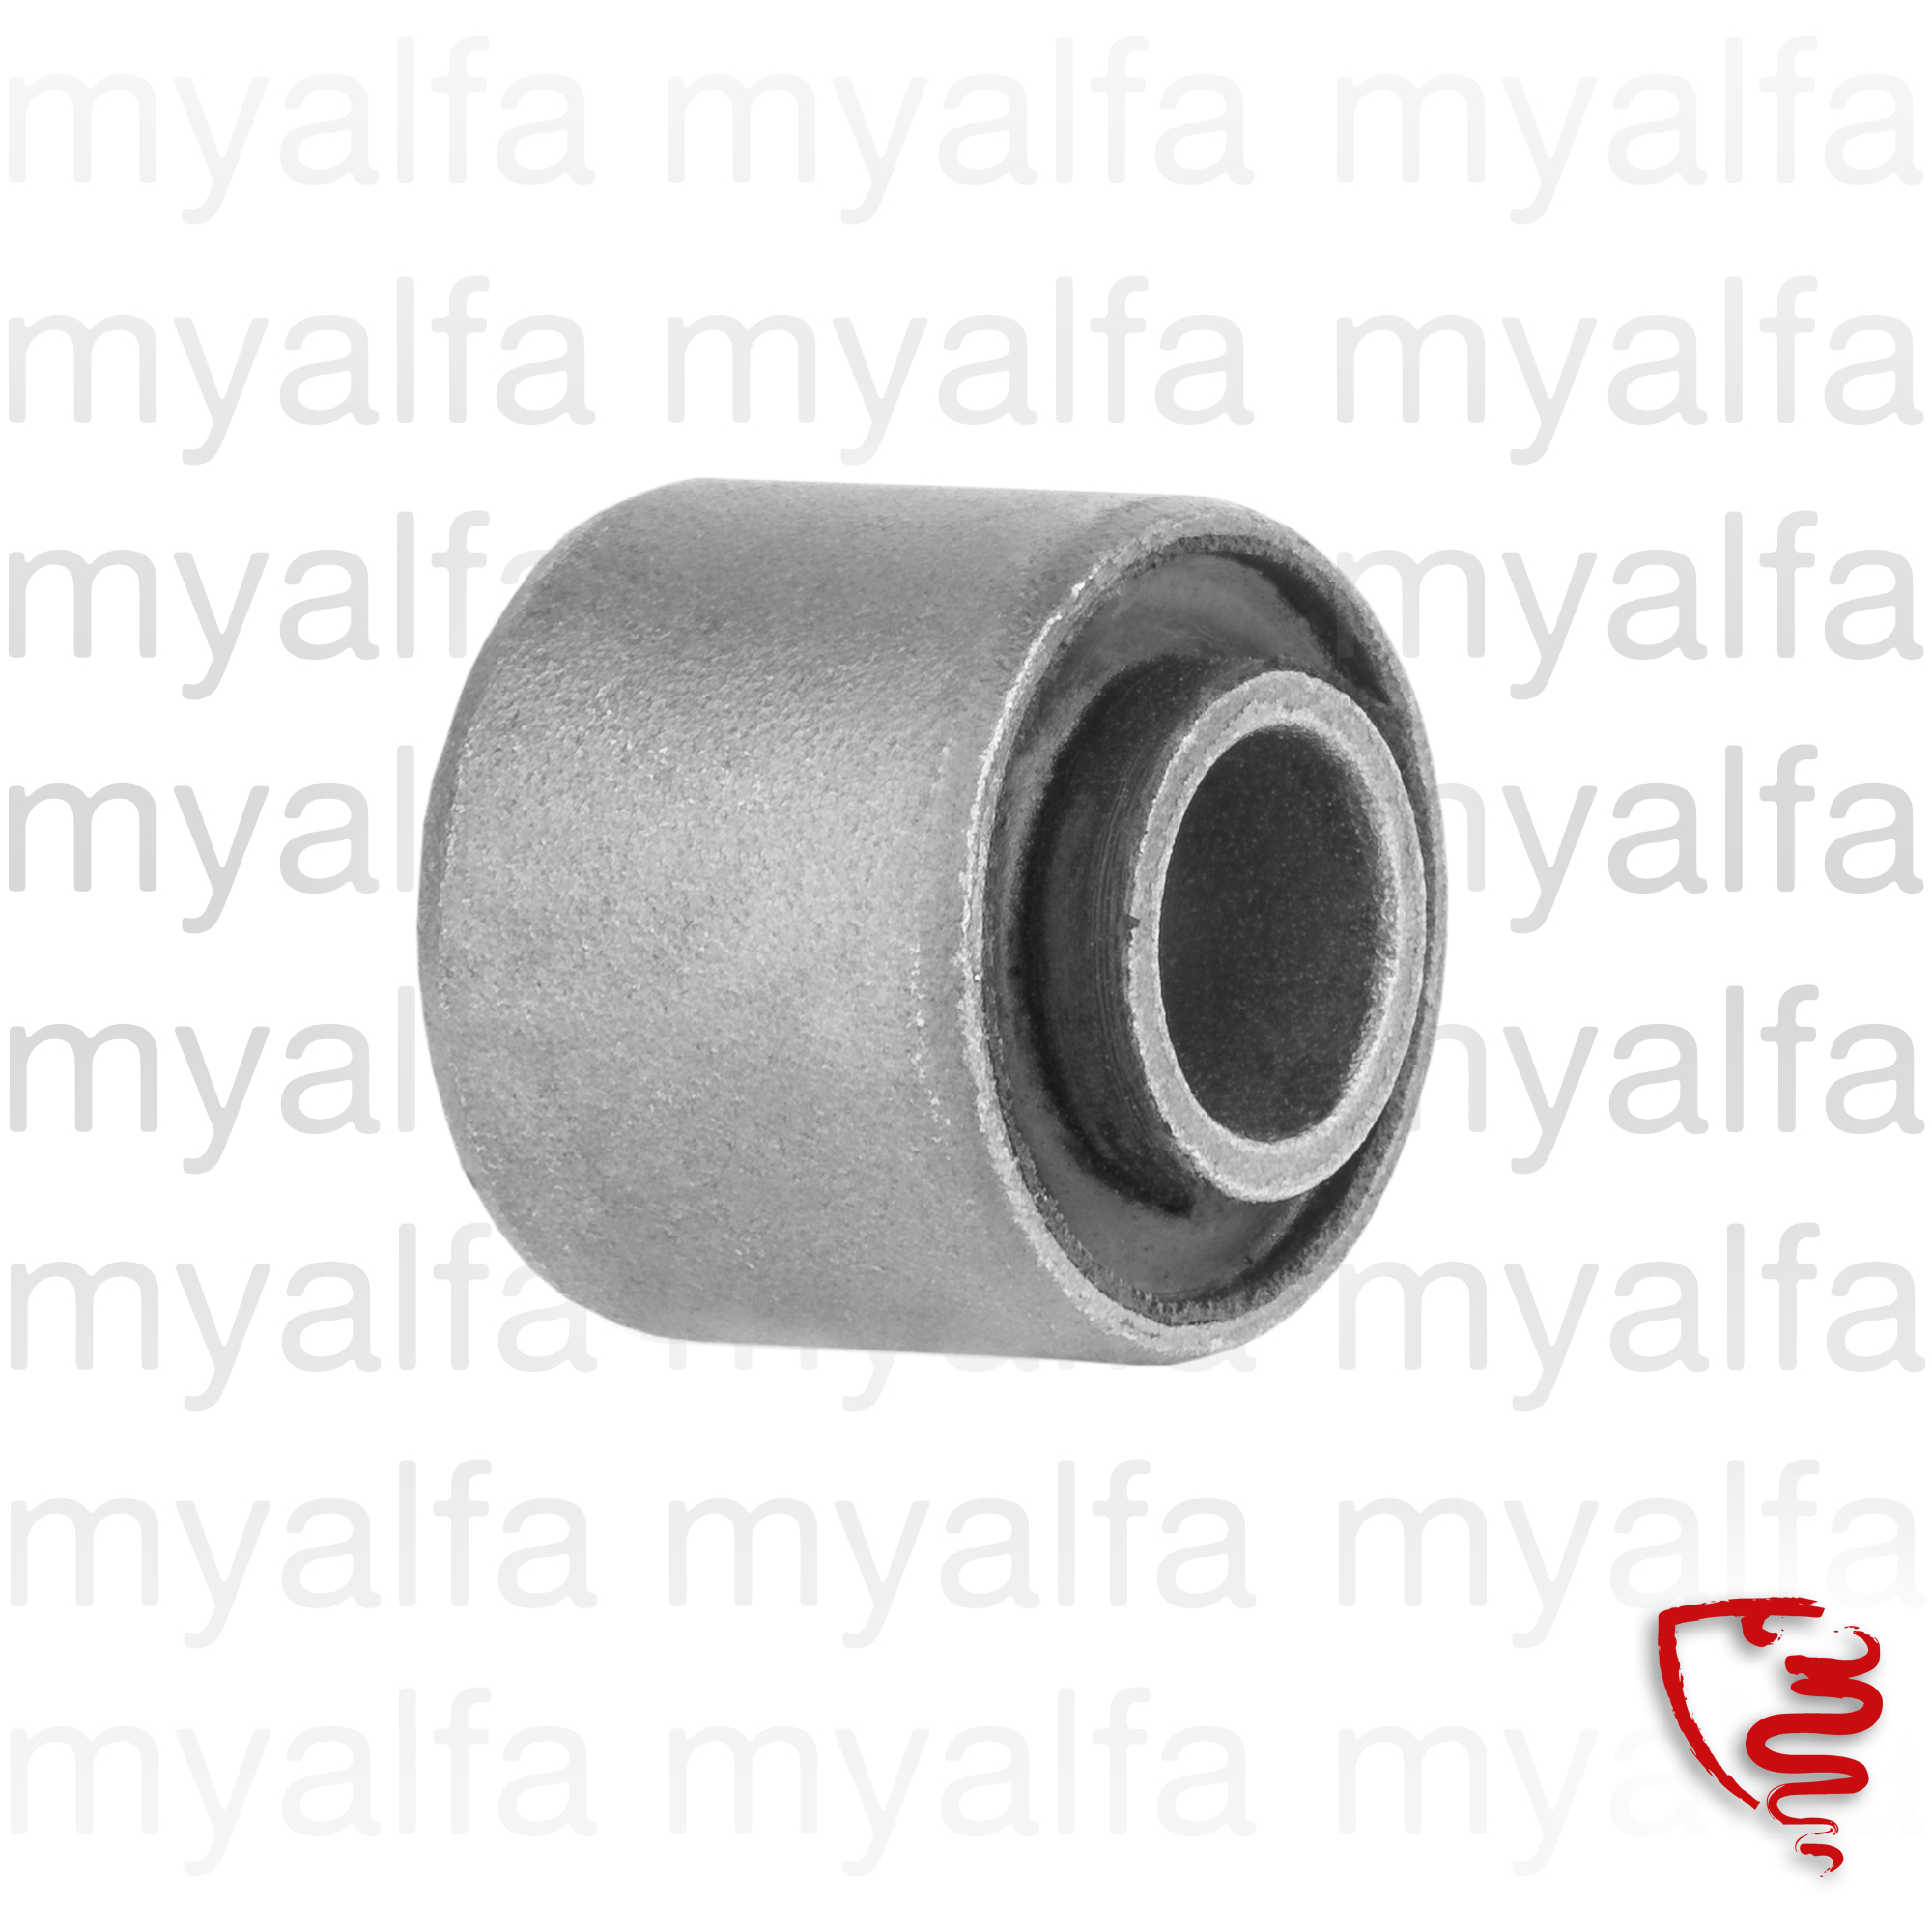 bar bushings stabilizer back top for 105/115, Chassis Mount, Rear suspension, Stabilizer